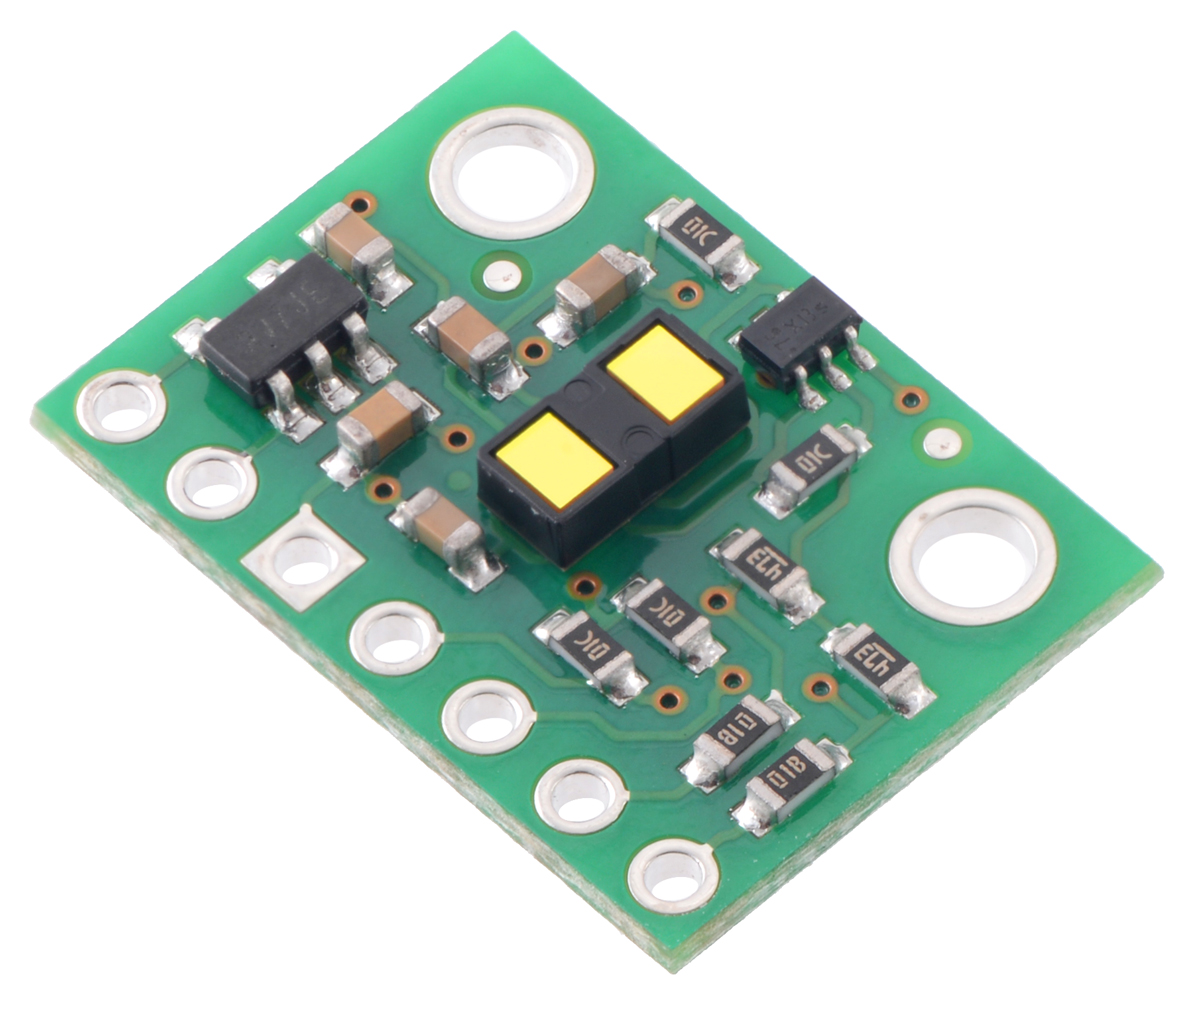 small resolution of vl53l1x time of flight distance sensor carrier with voltage regulator 400cm max